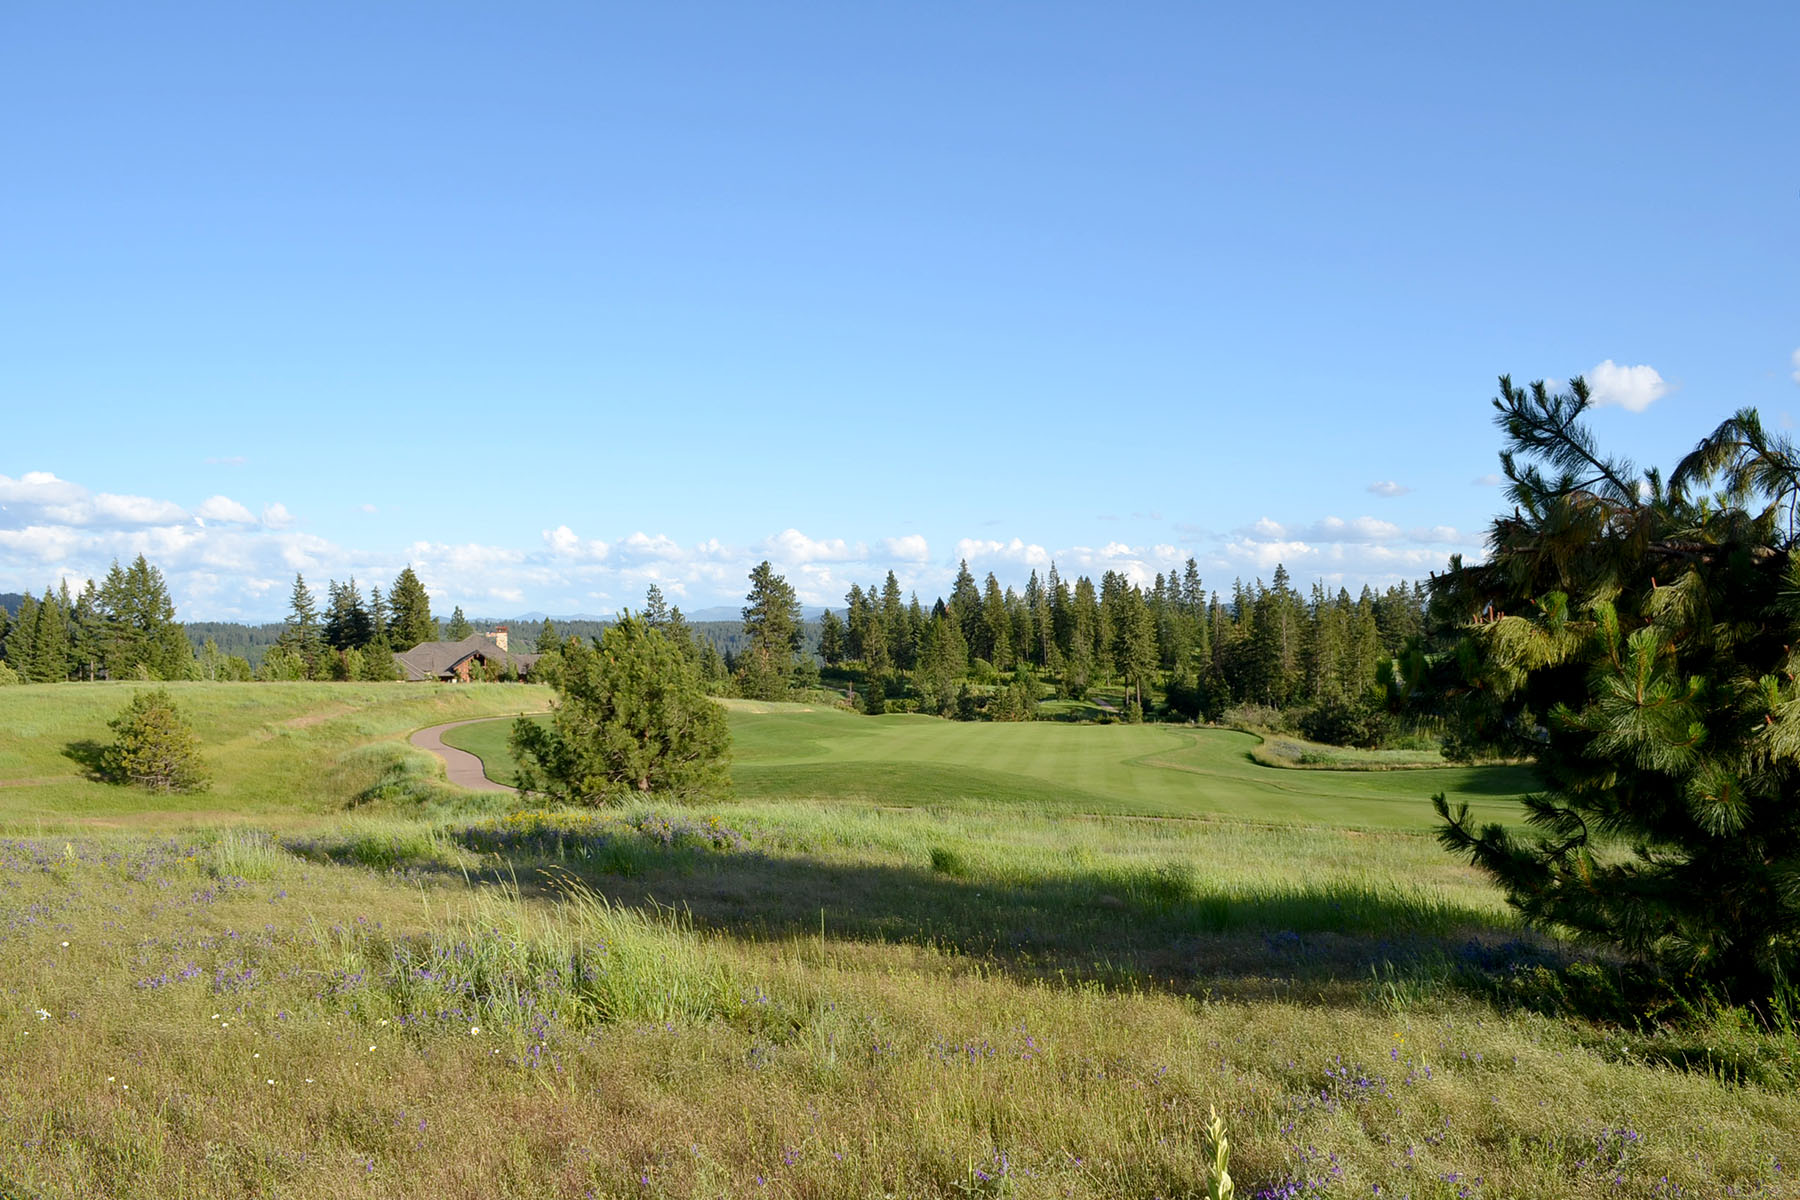 Land for Sale at Golf Club at Black Rock Lot Lot 291 W Slate Dr Coeur D Alene, Idaho, 83814 United States